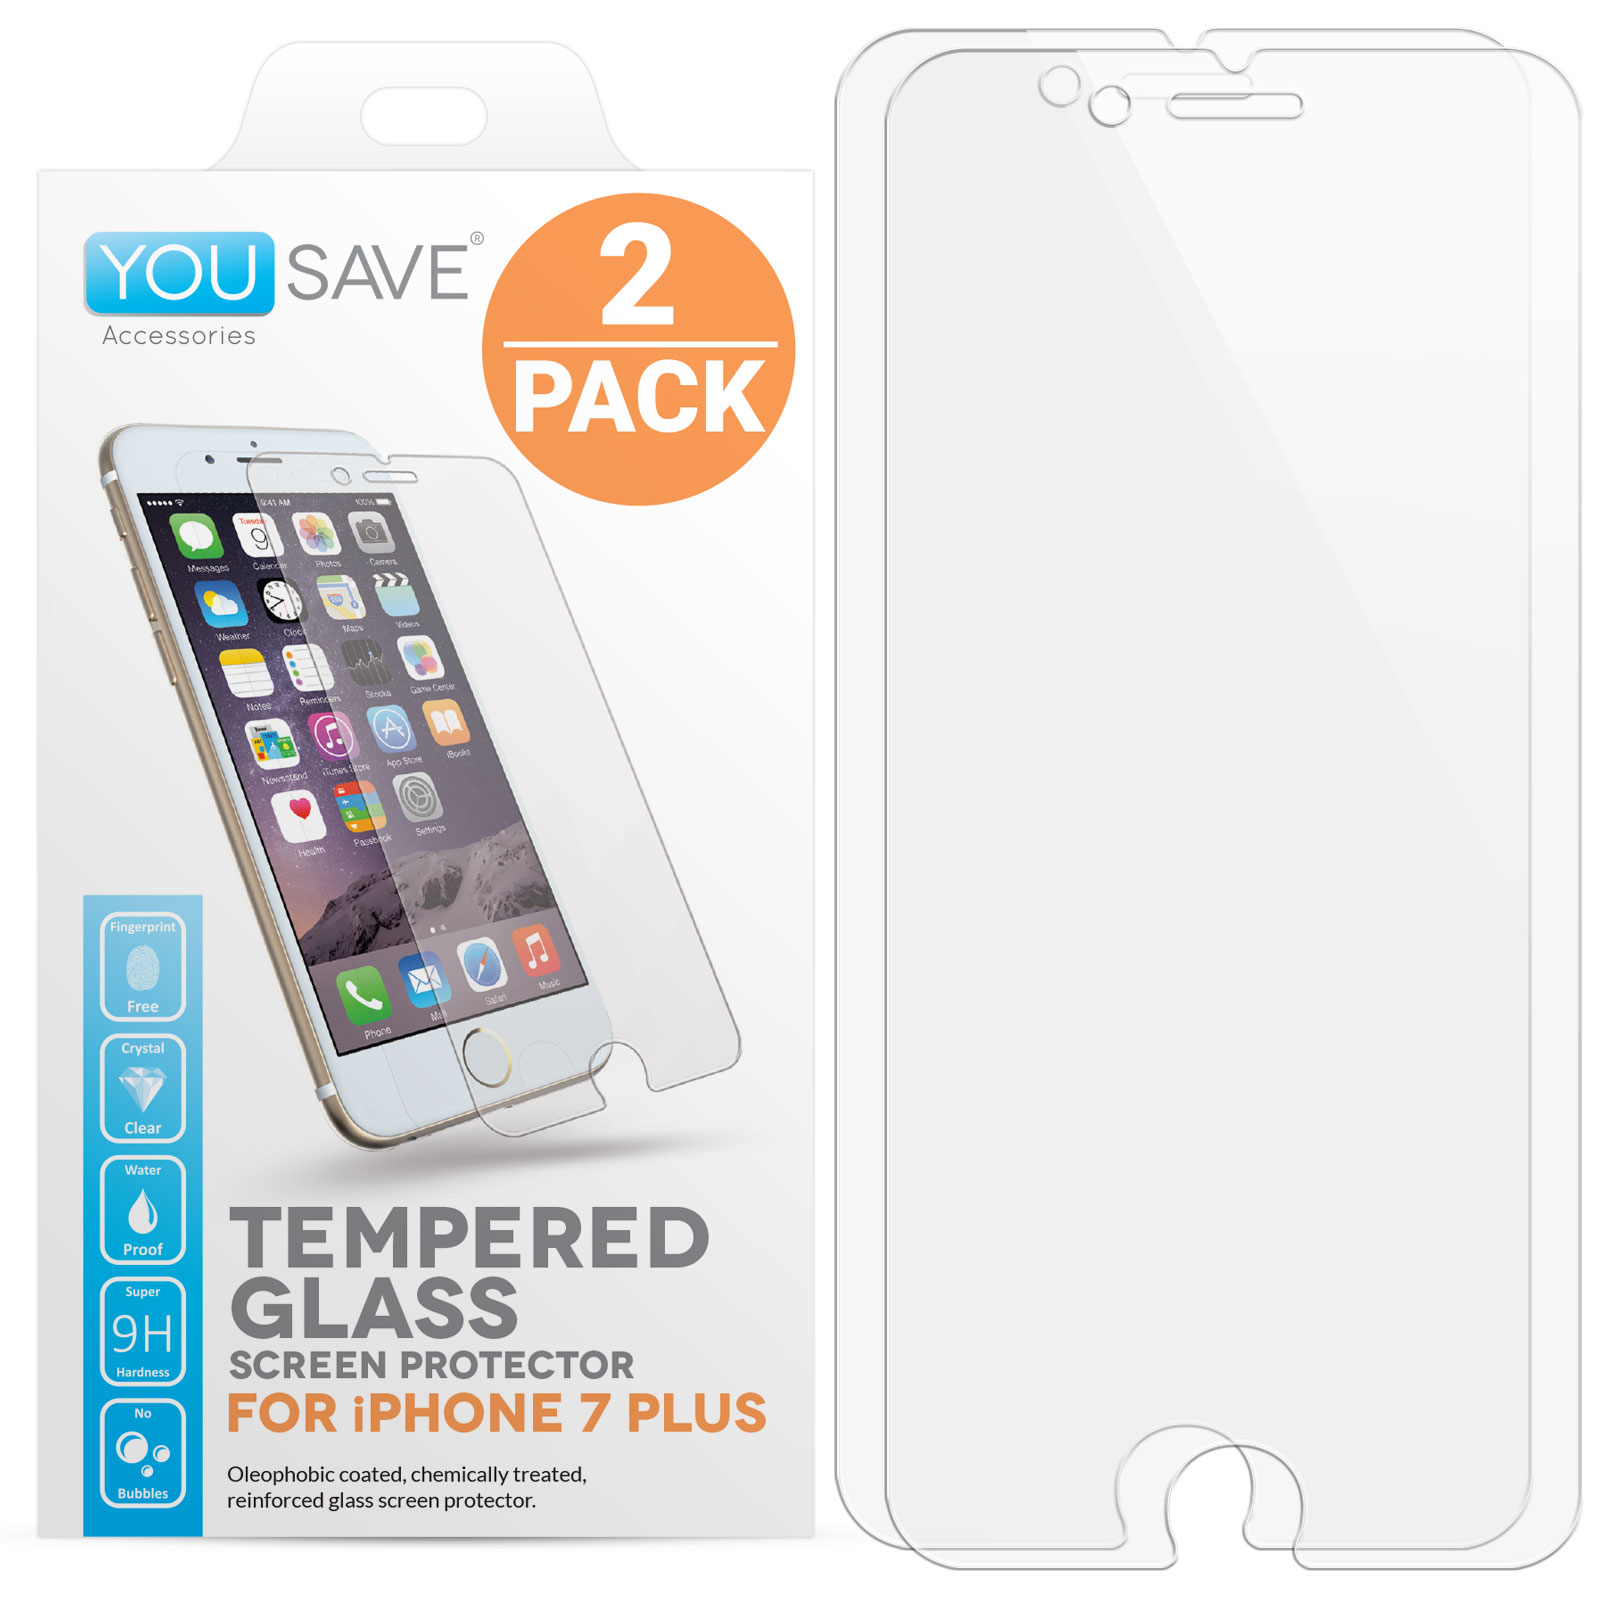 Yousave Accessories  iPhone 7 Plus Glass Screen Protector - Twin Pack